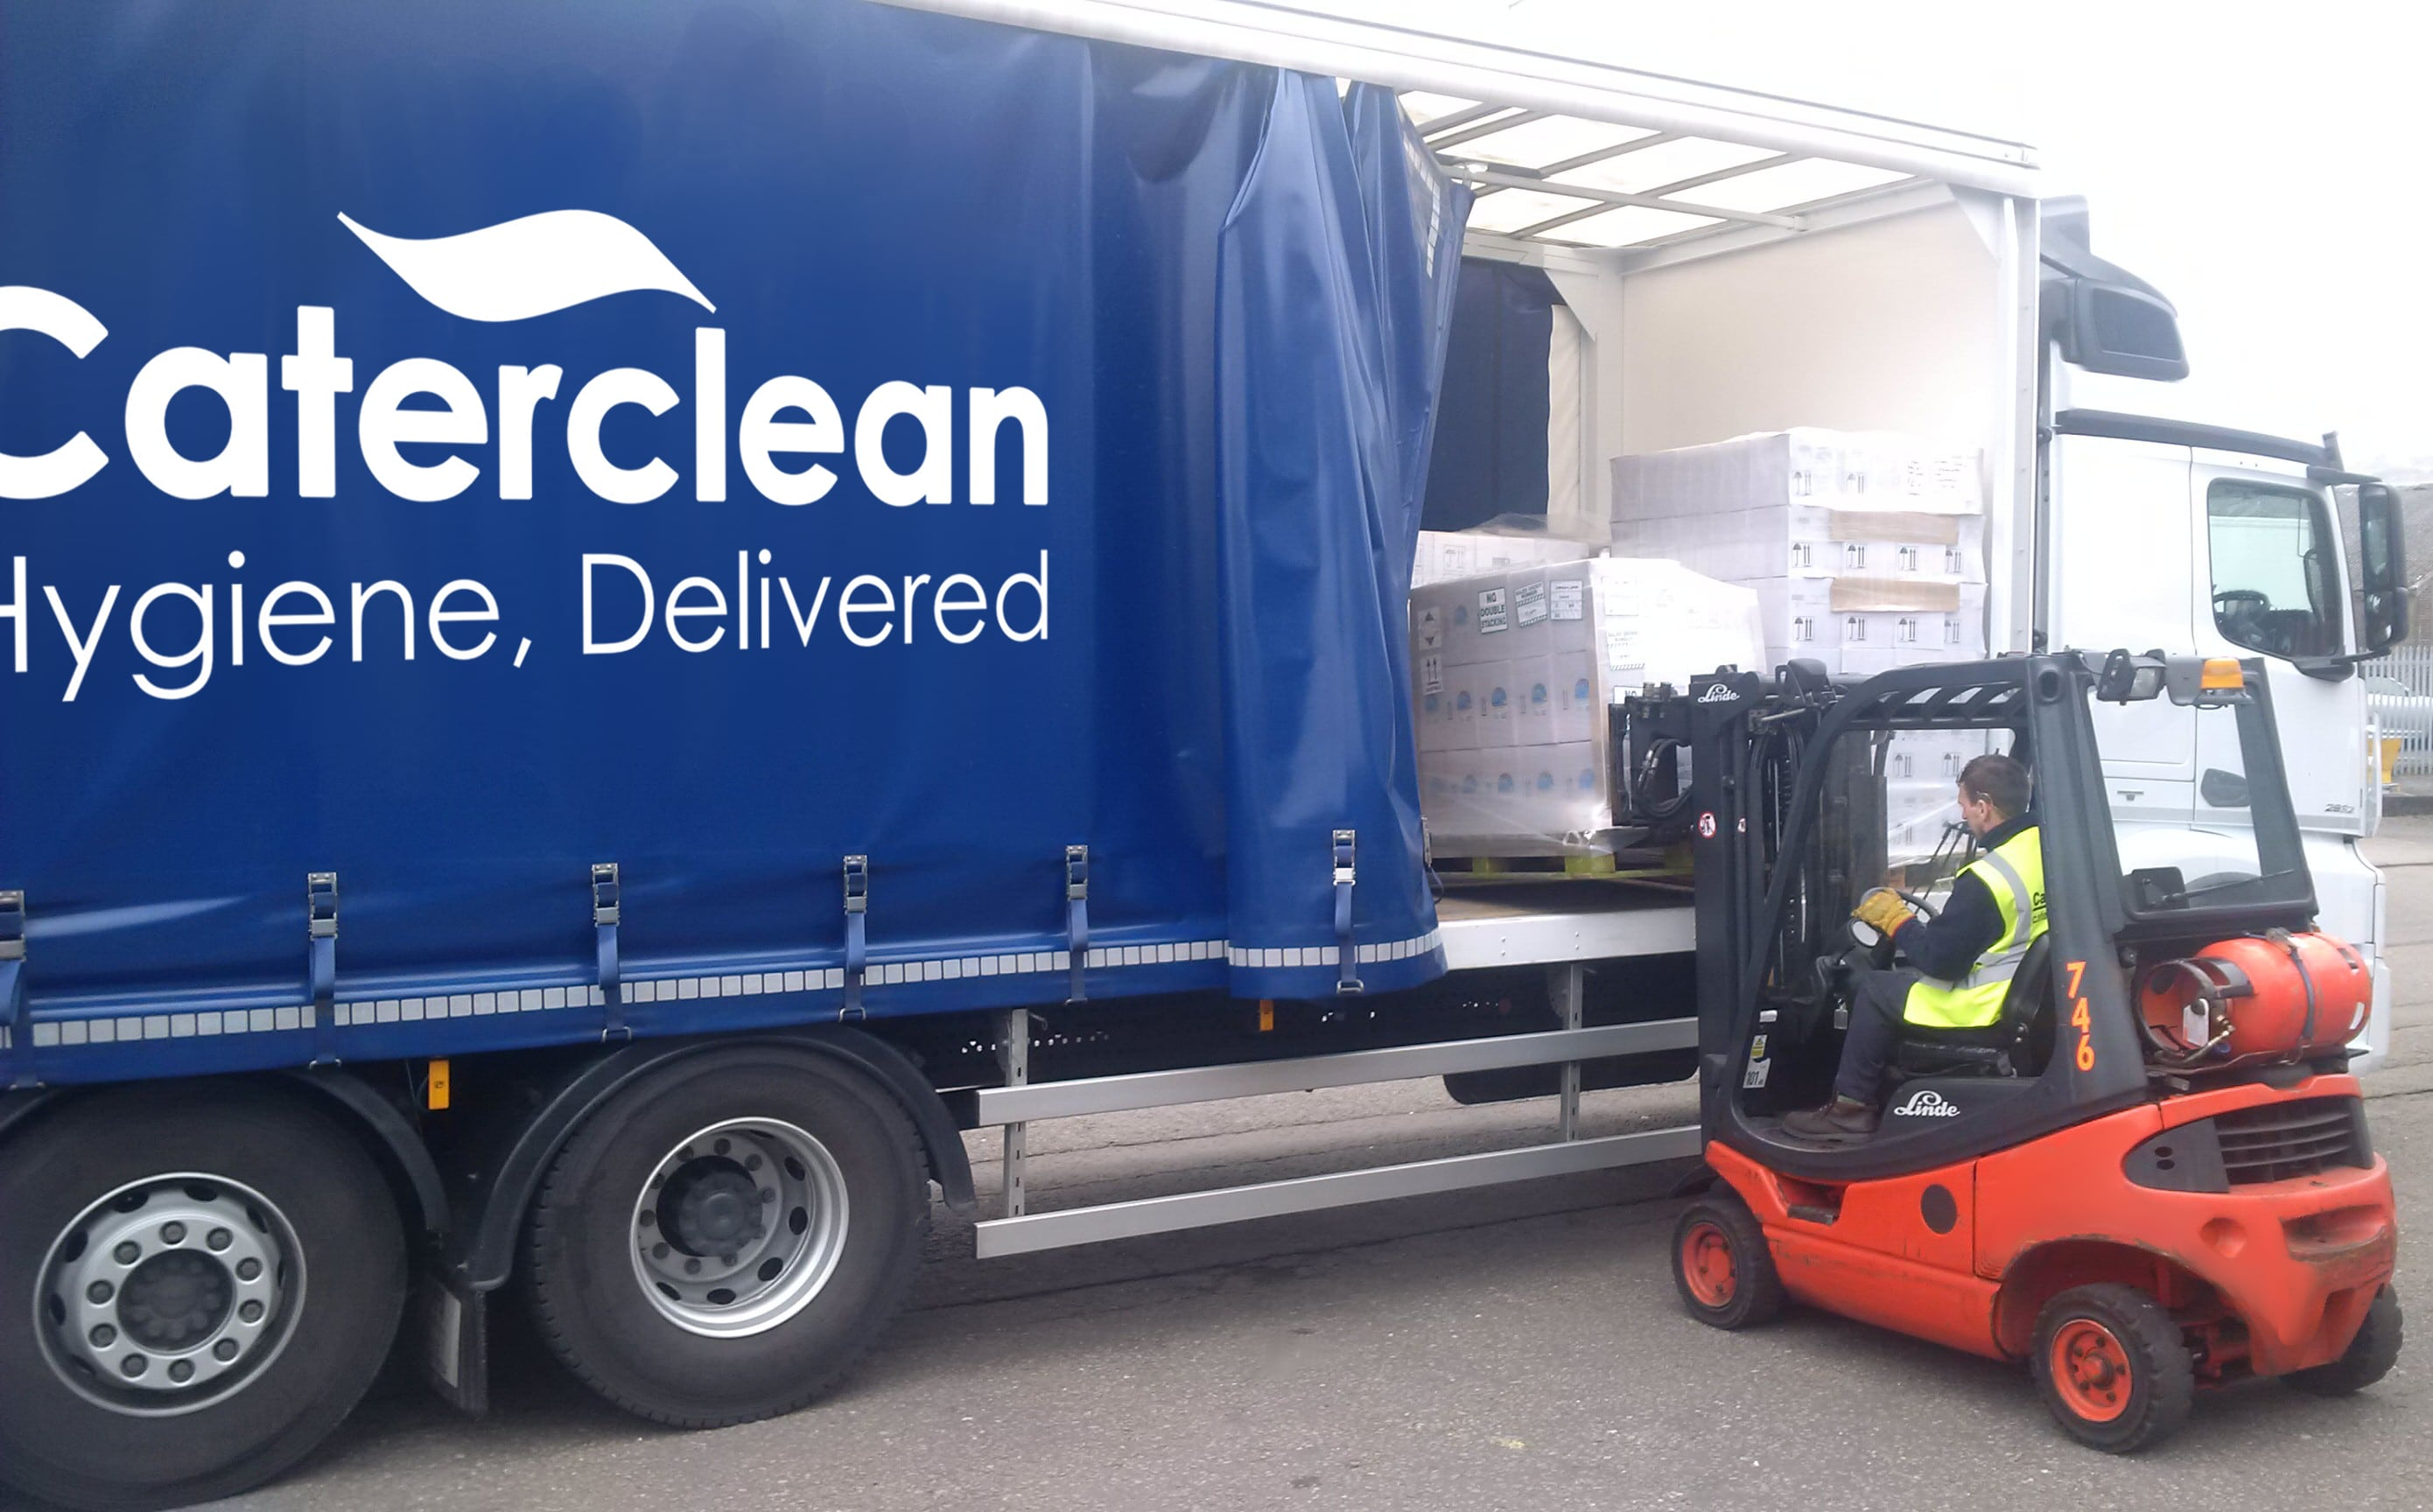 Caterclean Delivery